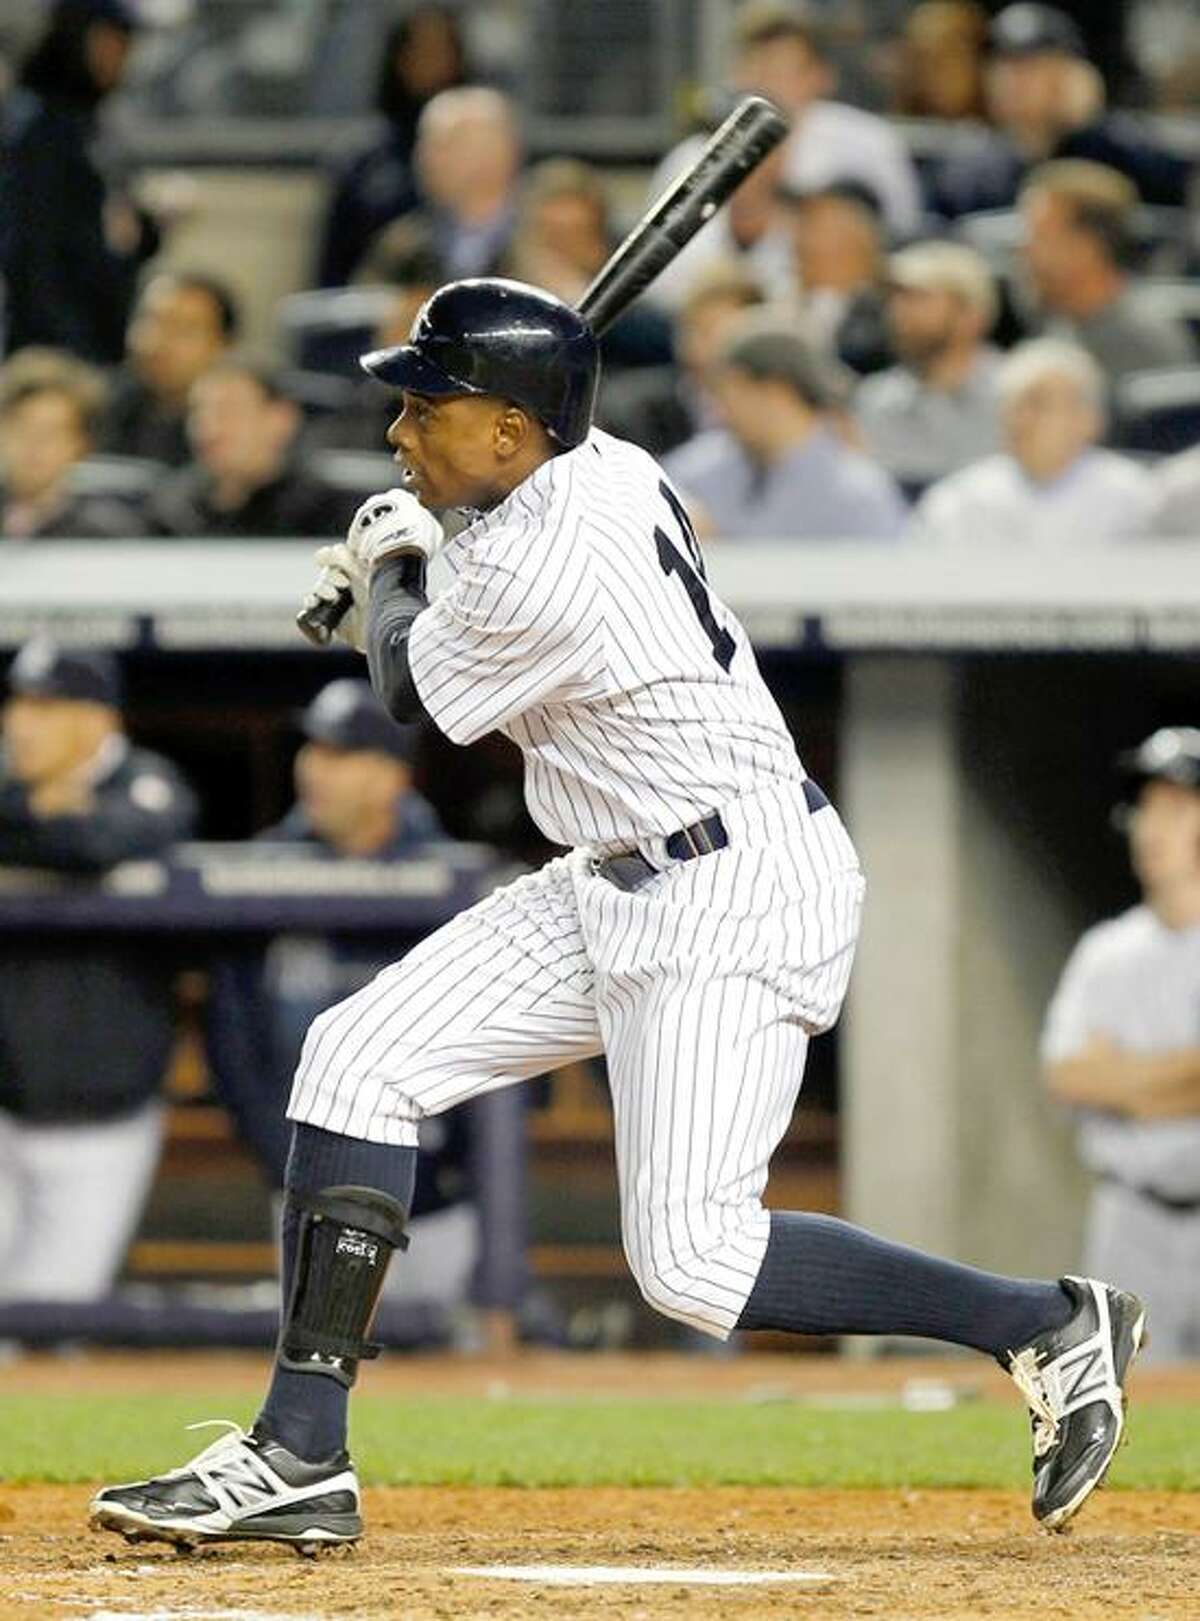 Apr 19, 2012; Bronx, NY, USA; New York Yankees center fielder Curtis Granderson hits a home run in the fourth inning against the Minnesota Twins at Yankee Stadium. Mandatory Credit: Tim Farrell/THE STAR-LEDGER via US PRESSWIRE